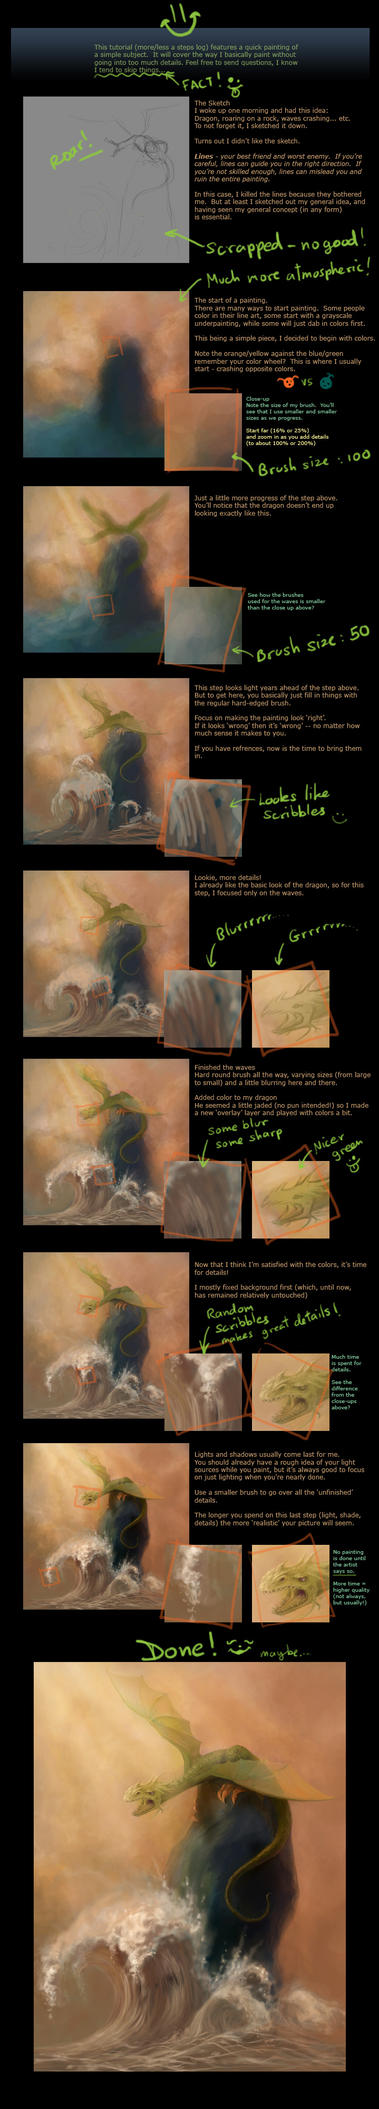 Painting Tutorial - Basics by Klyph